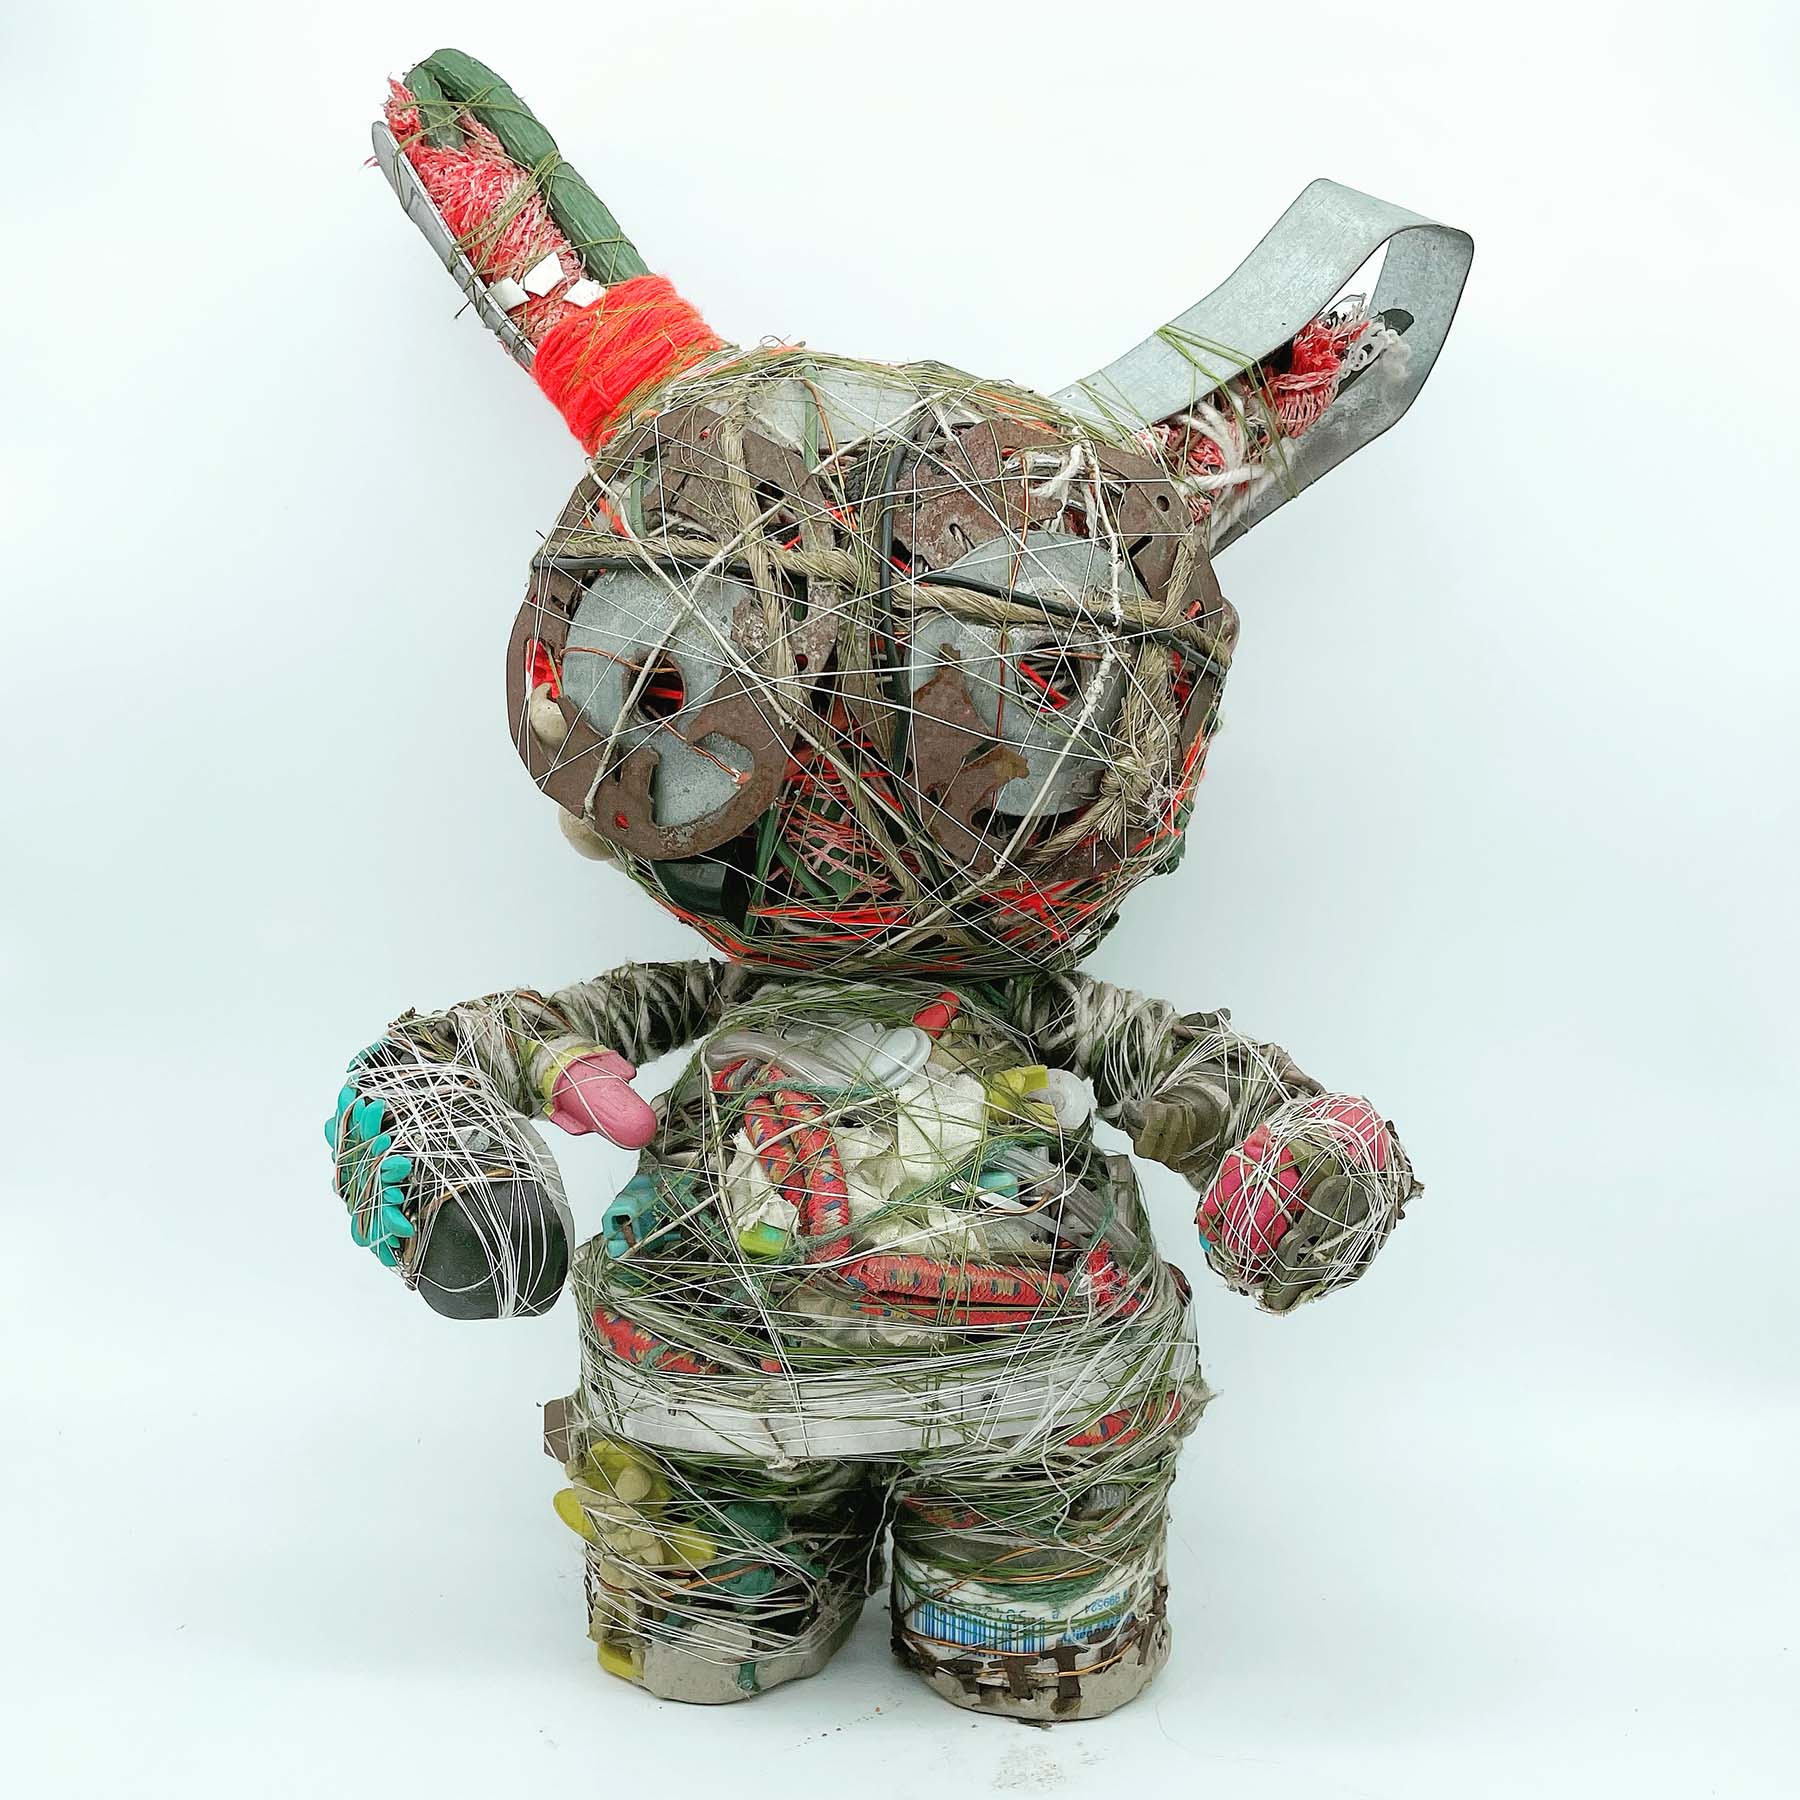 junk warrior, hoarder, wrapping artist, small objects, sea, baltimore, american